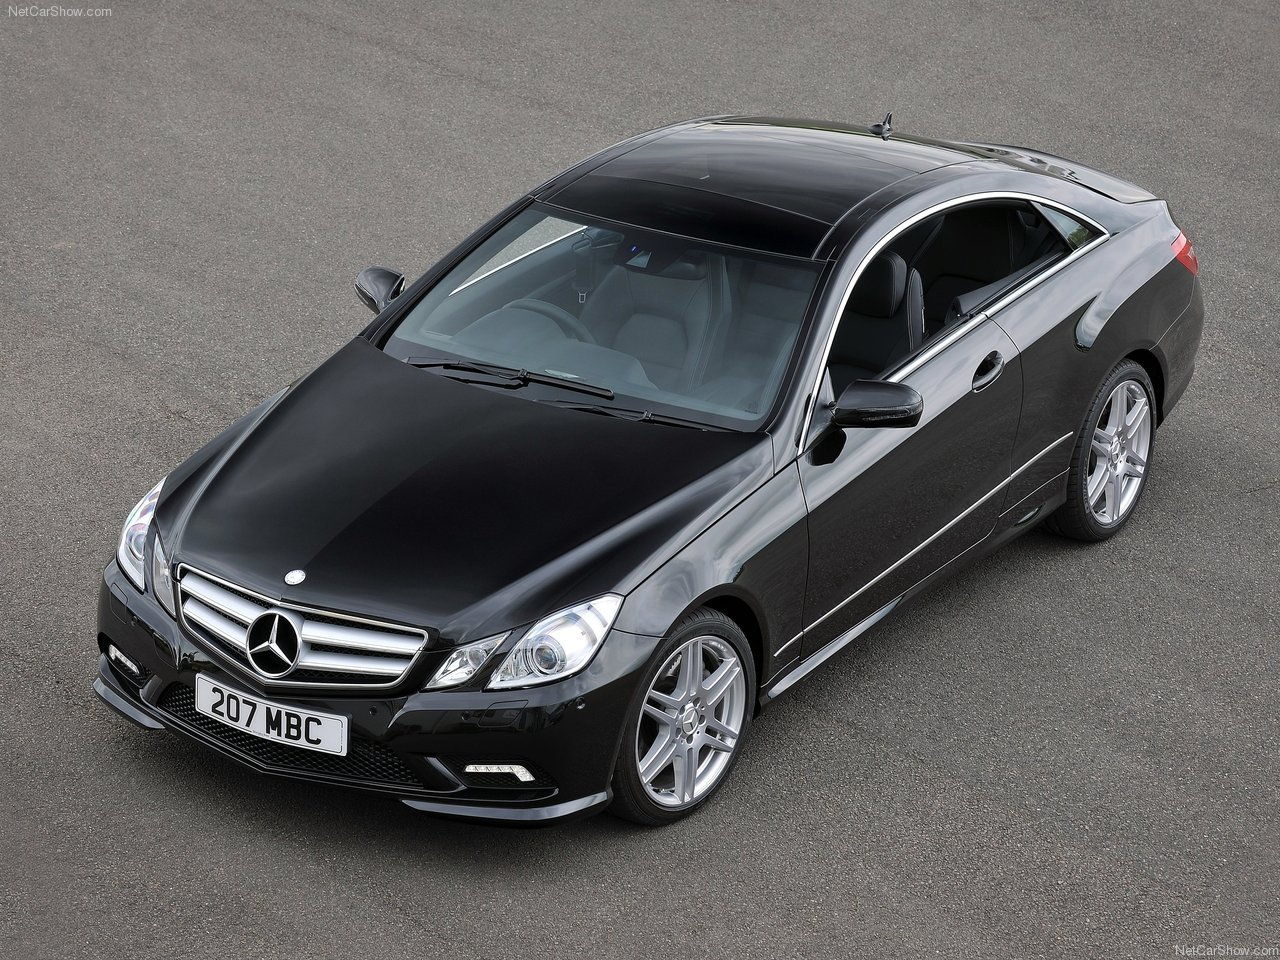 2010 mercedes benz e class coupe uk version mercedes benz cars. Black Bedroom Furniture Sets. Home Design Ideas